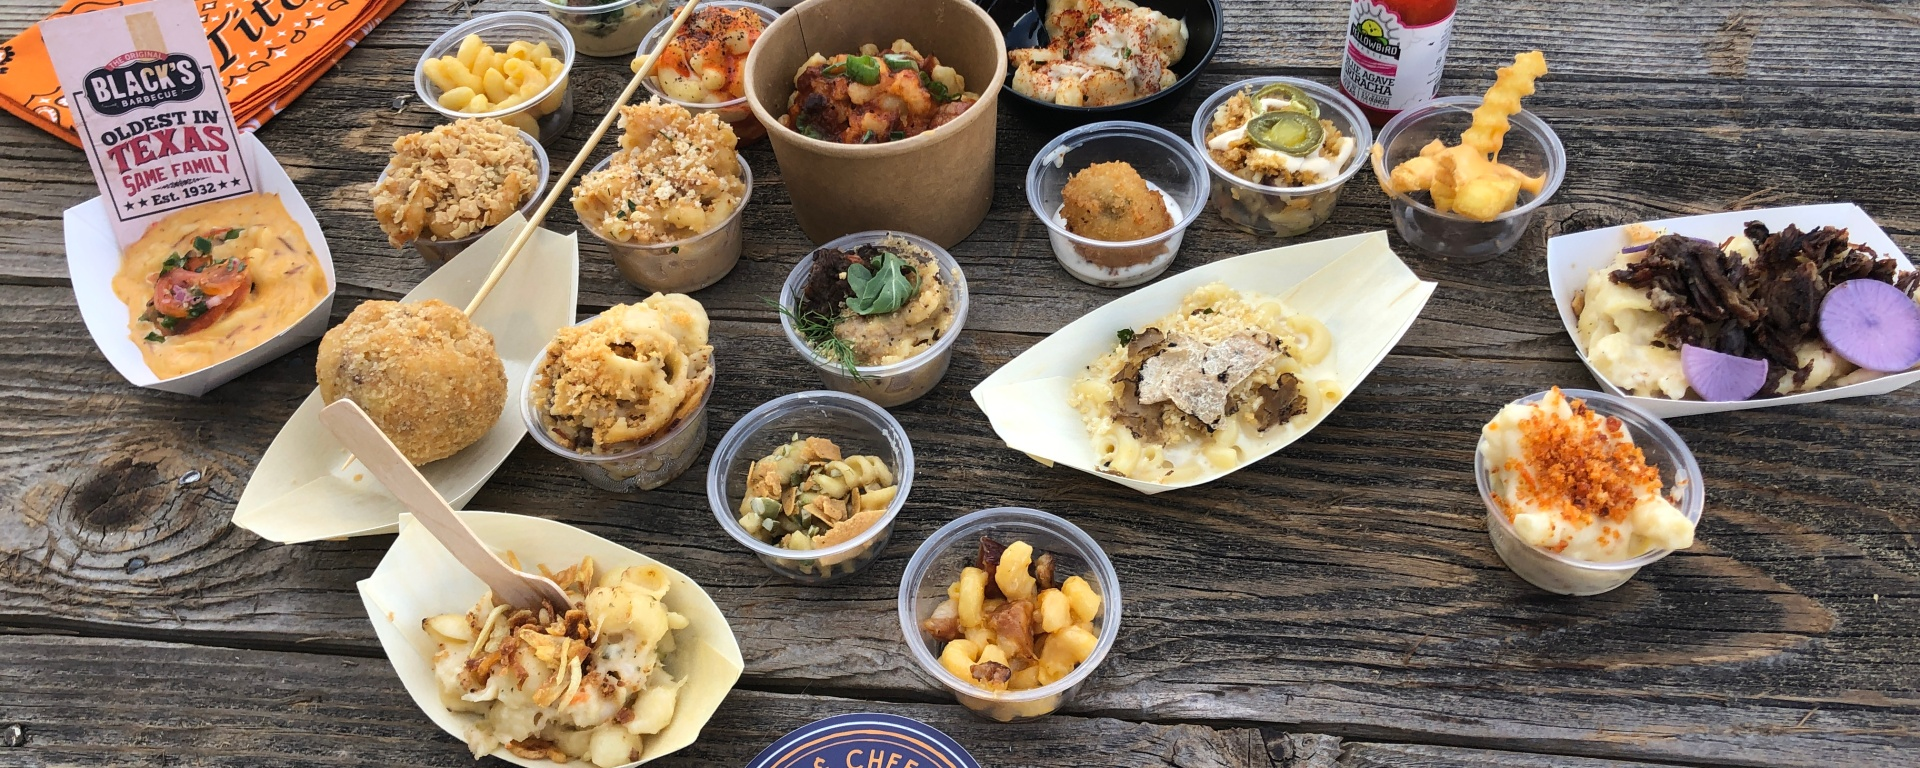 All of the mac n cheese the festival had to offer.